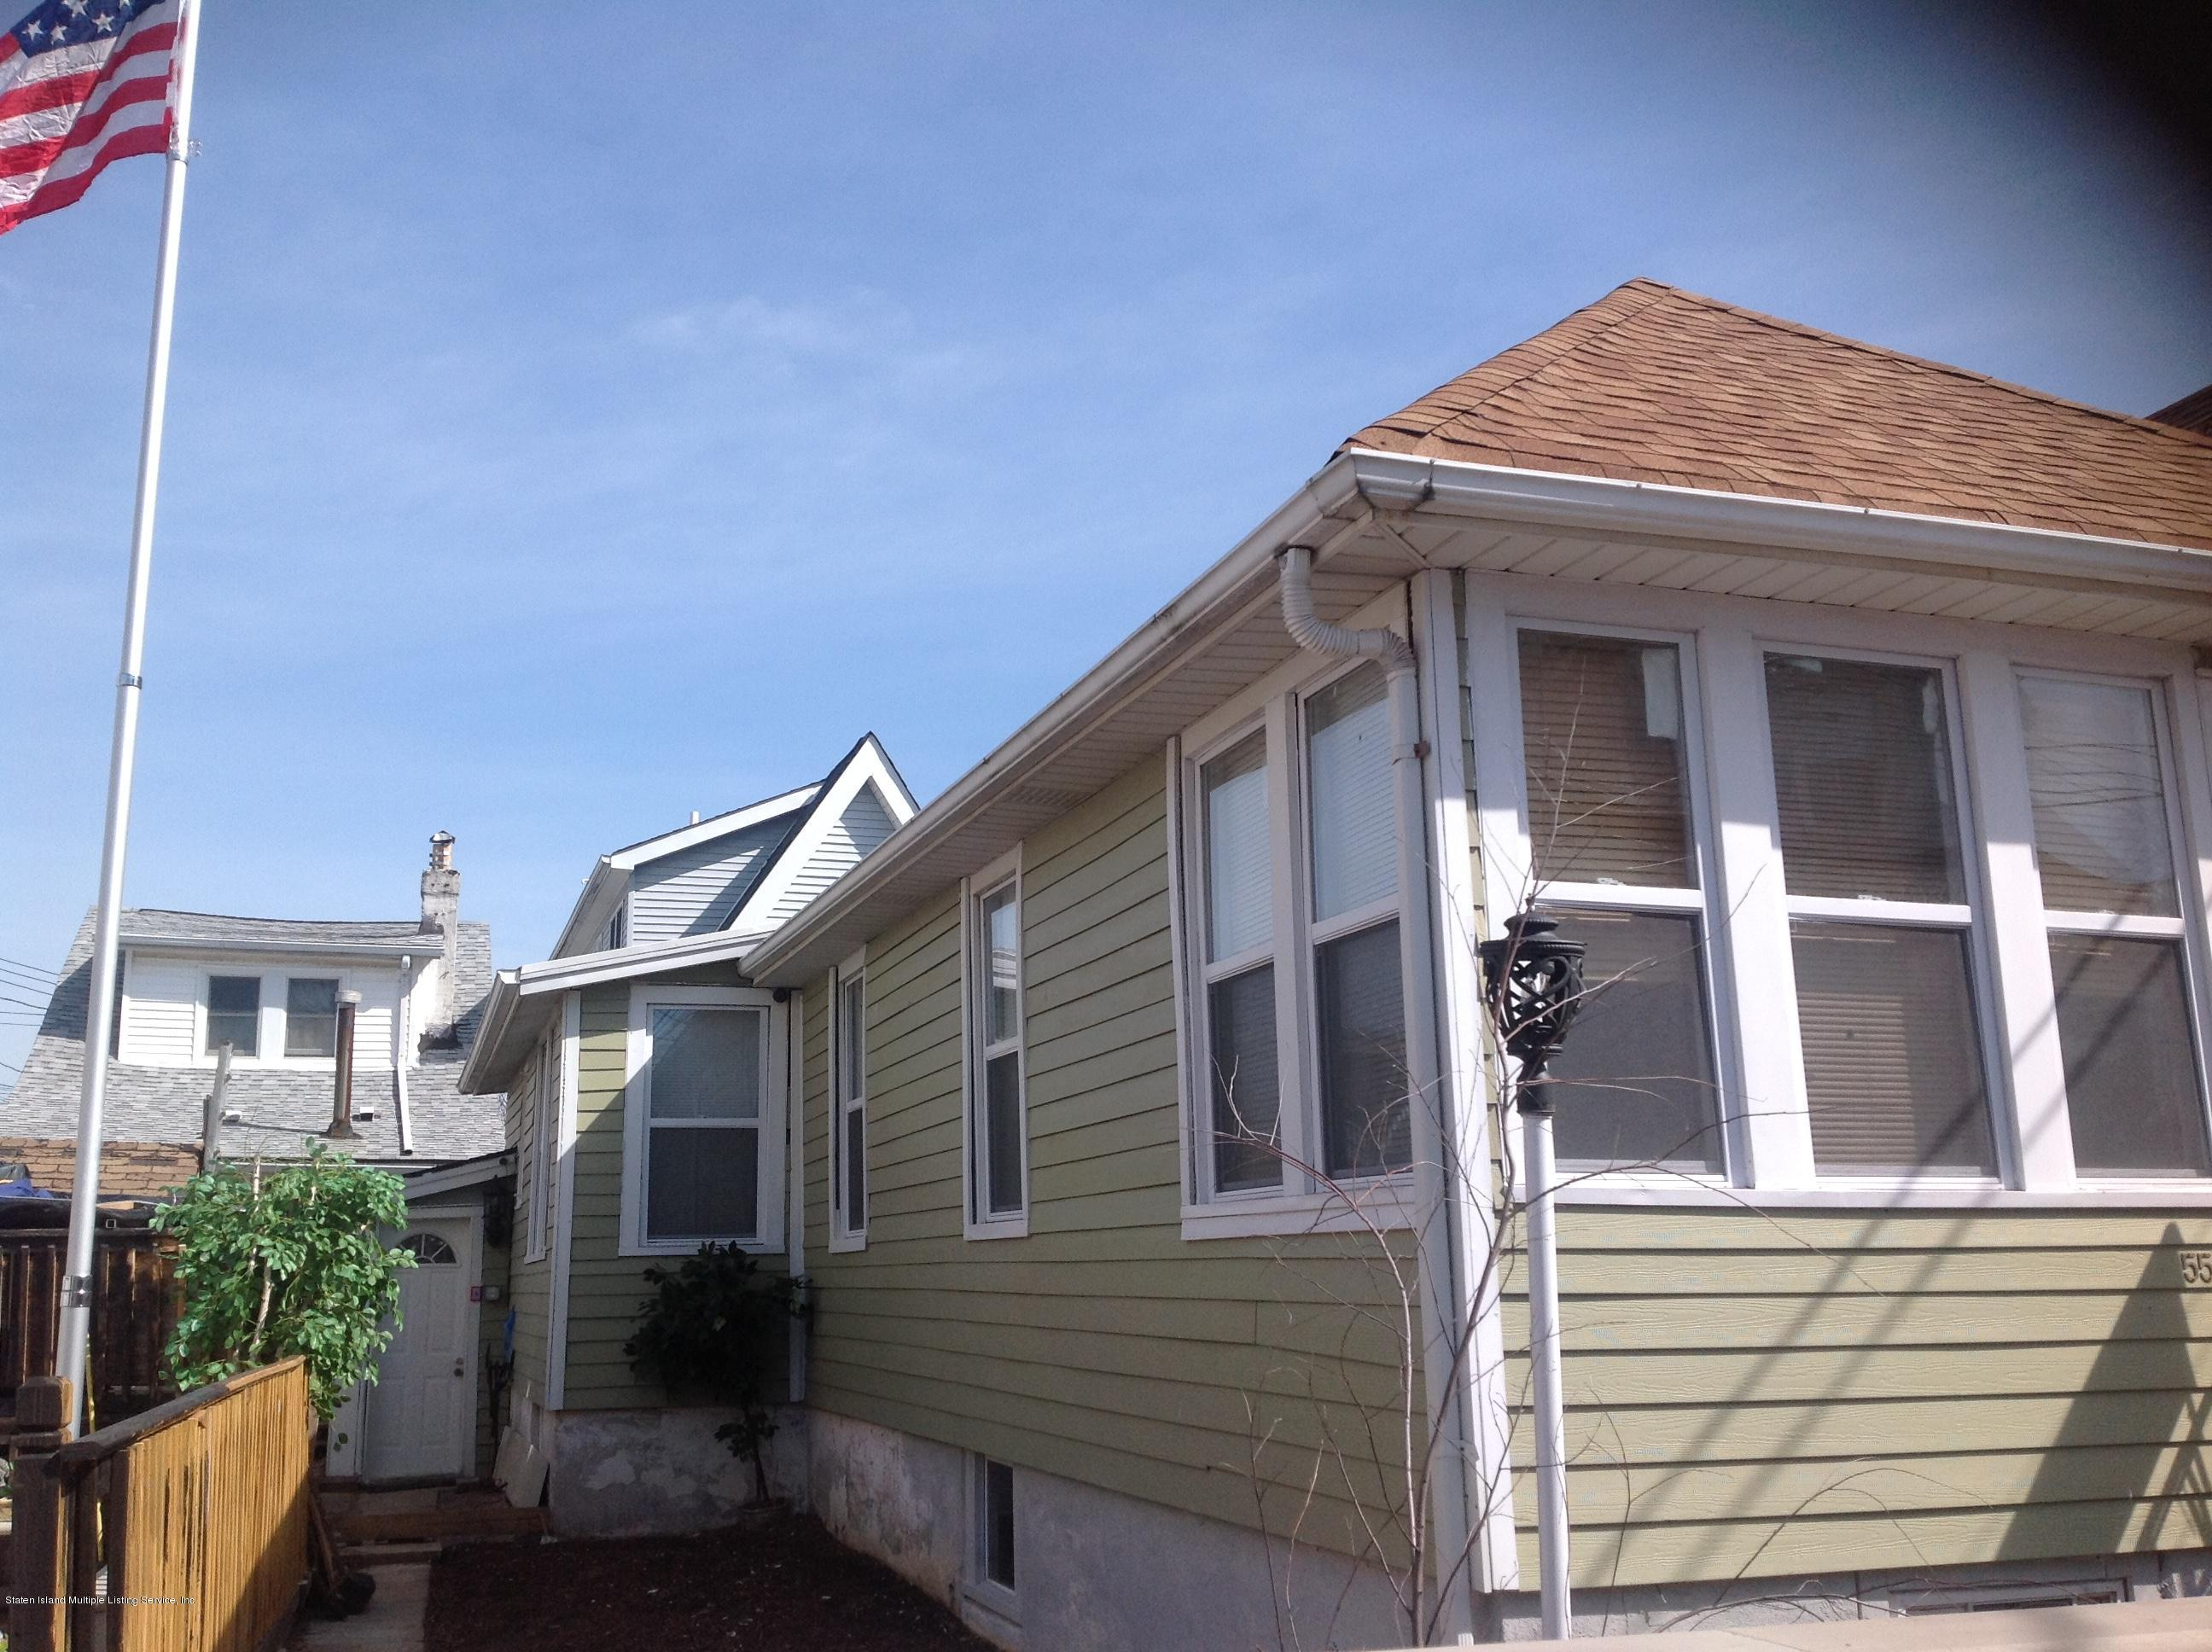 Single Family - Detached 55 Center Place  Staten Island, NY 10306, MLS-1126948-3